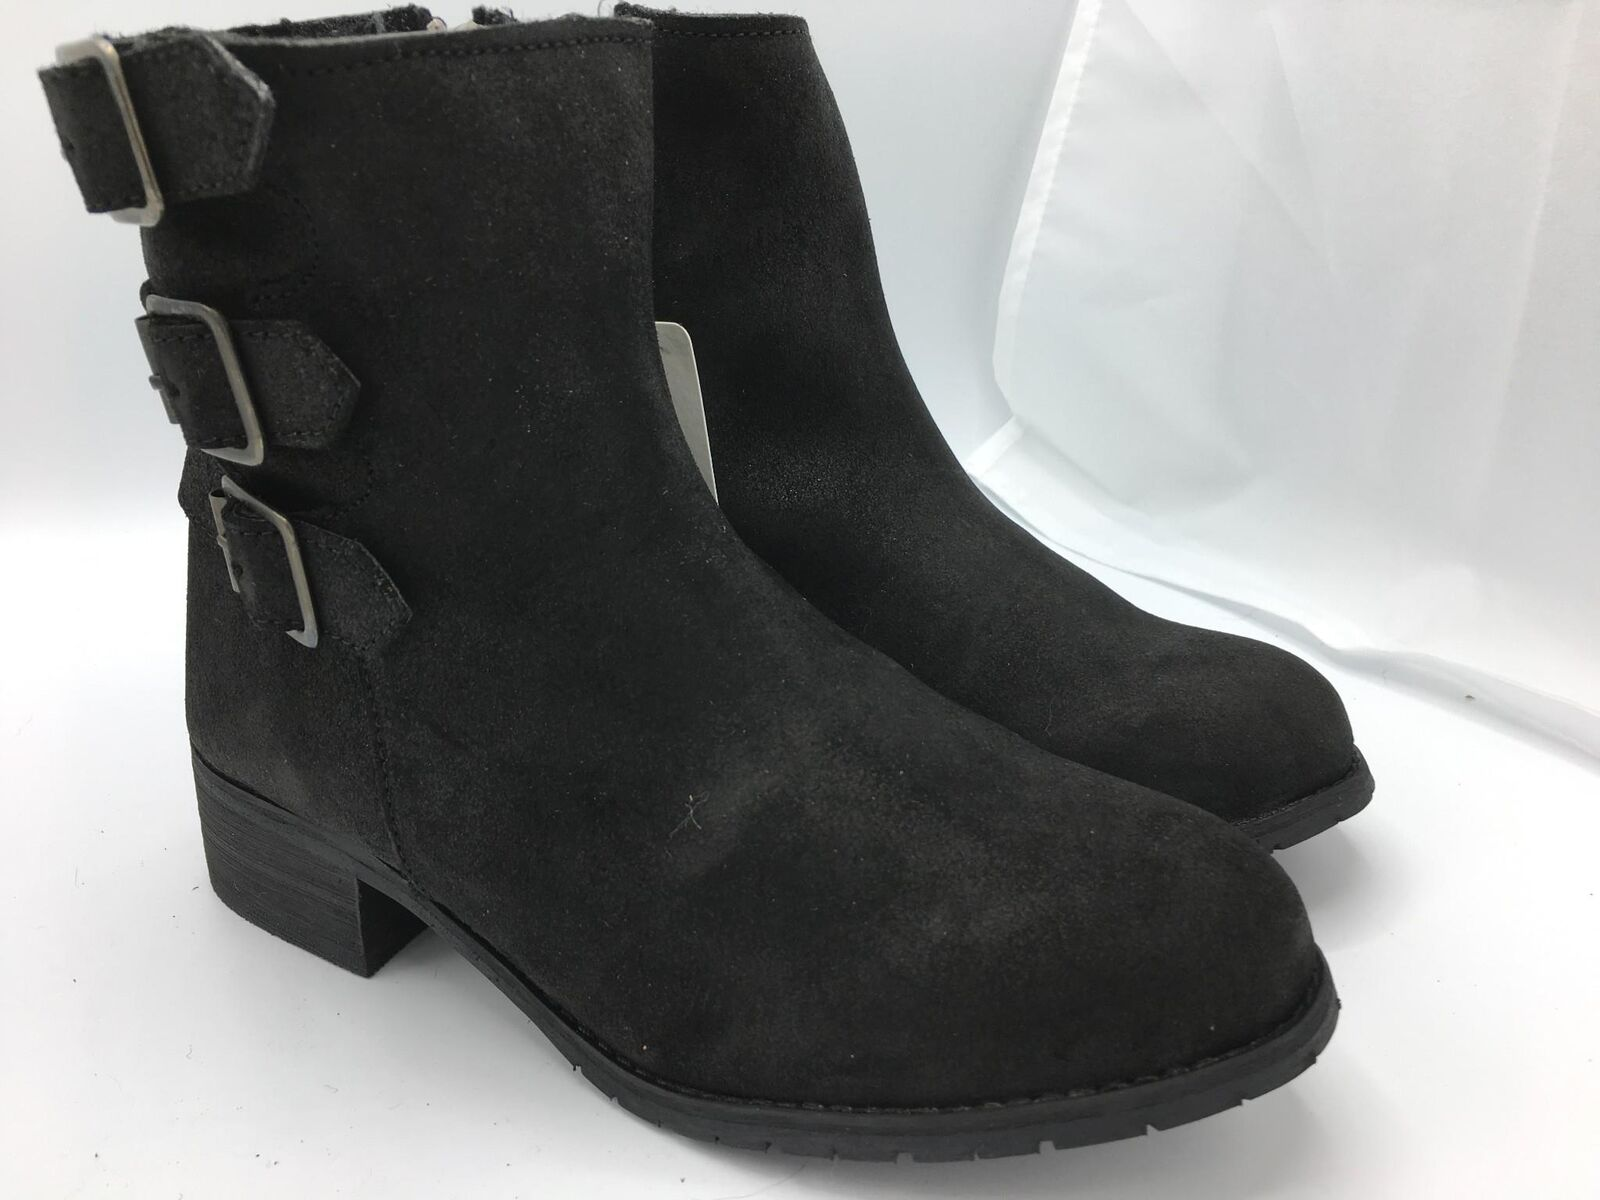 BooRoo Women&#039;s Jules Ankle Boots (1391,1392,139<wbr/>4) Black Oiled Suede Ret. 5